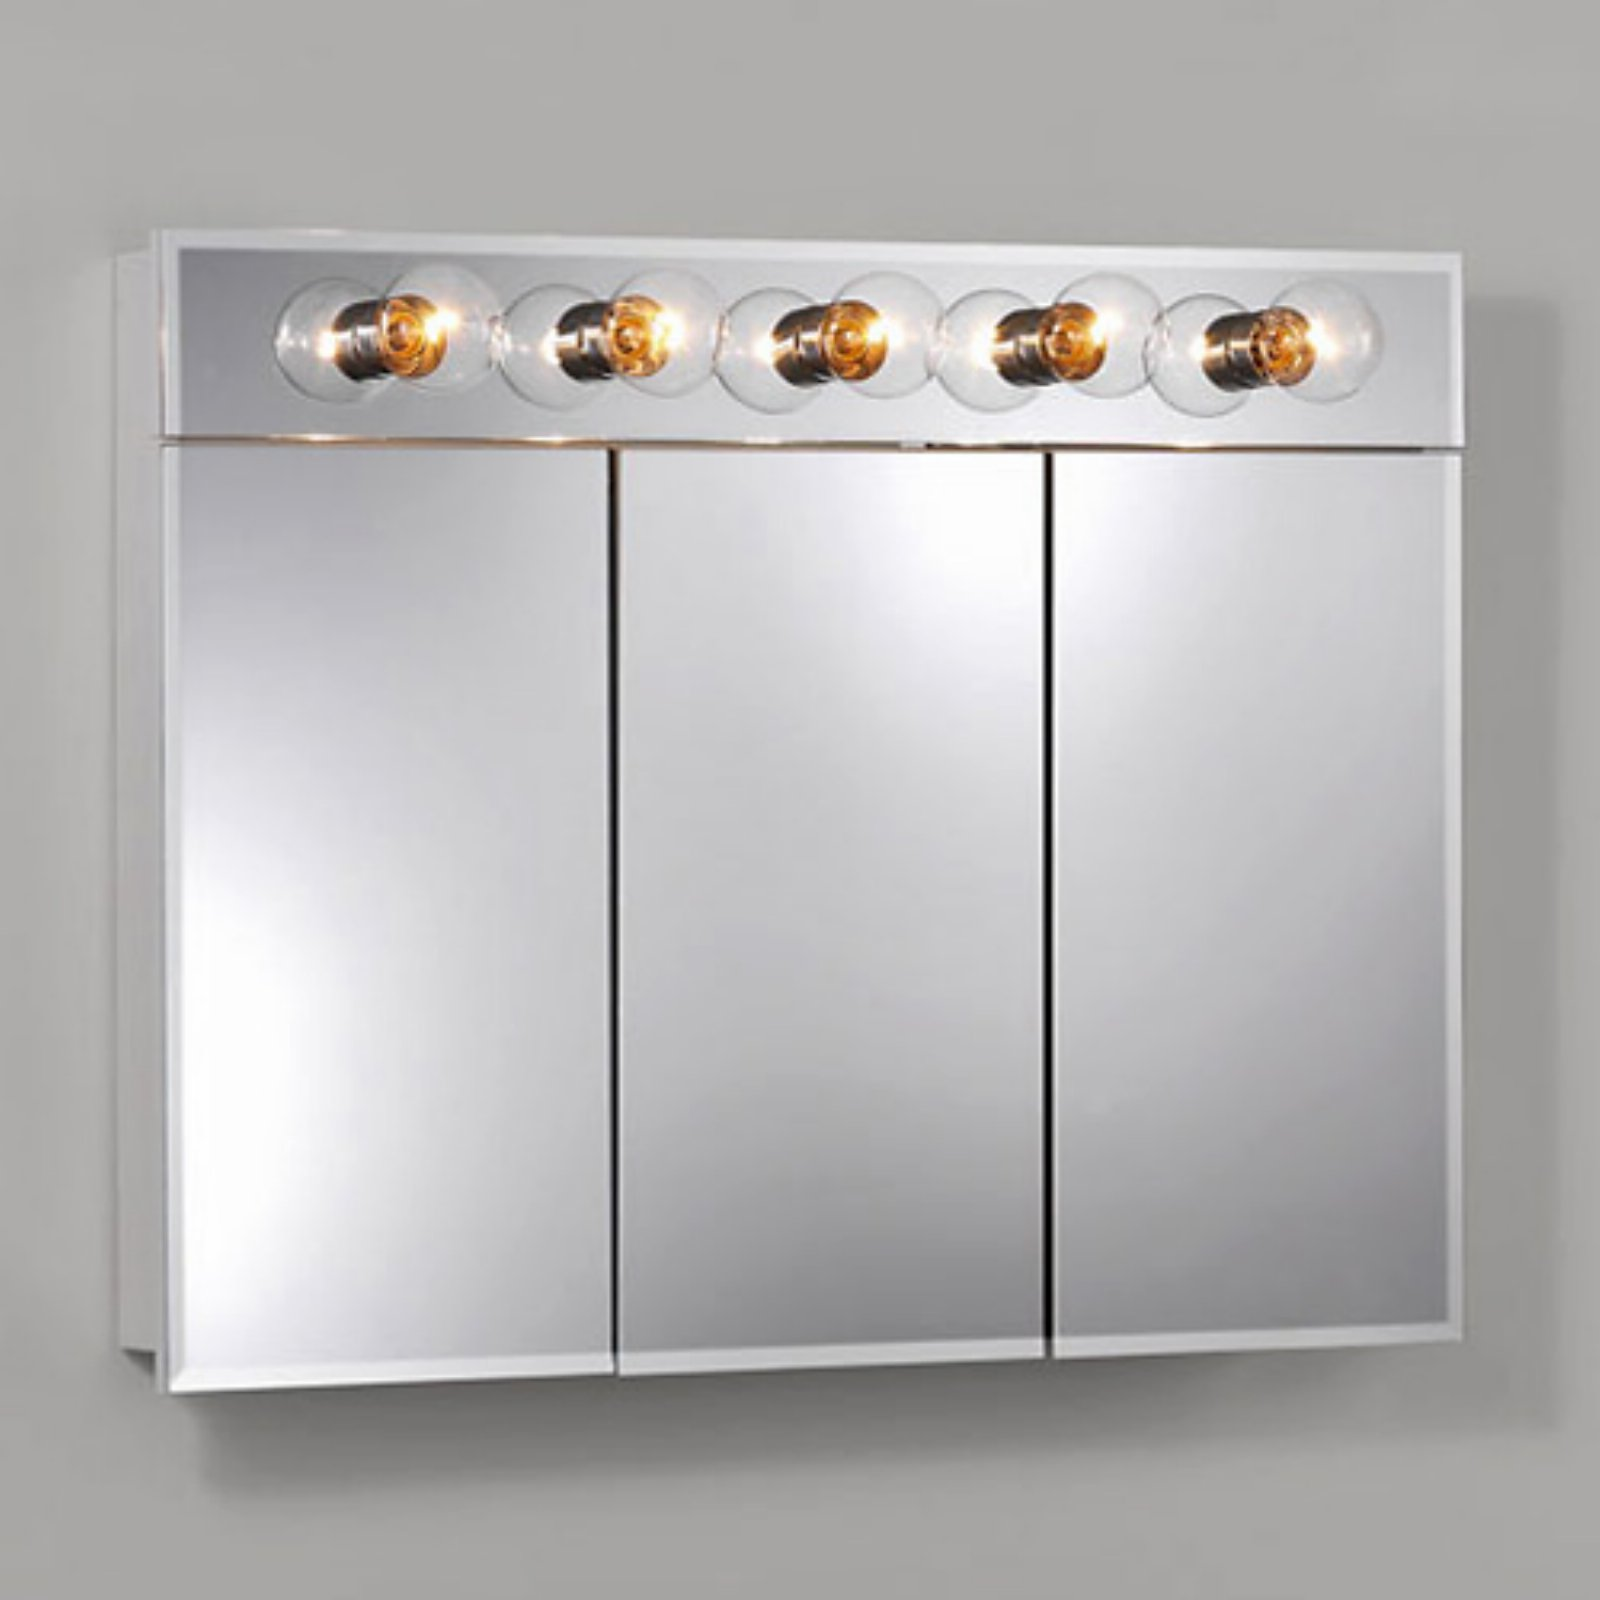 Jensen Medicine Cabinet Ashland Tri-View 5-Light 36W x 28H in. Surface Mount Medicine... by Nutone Broan